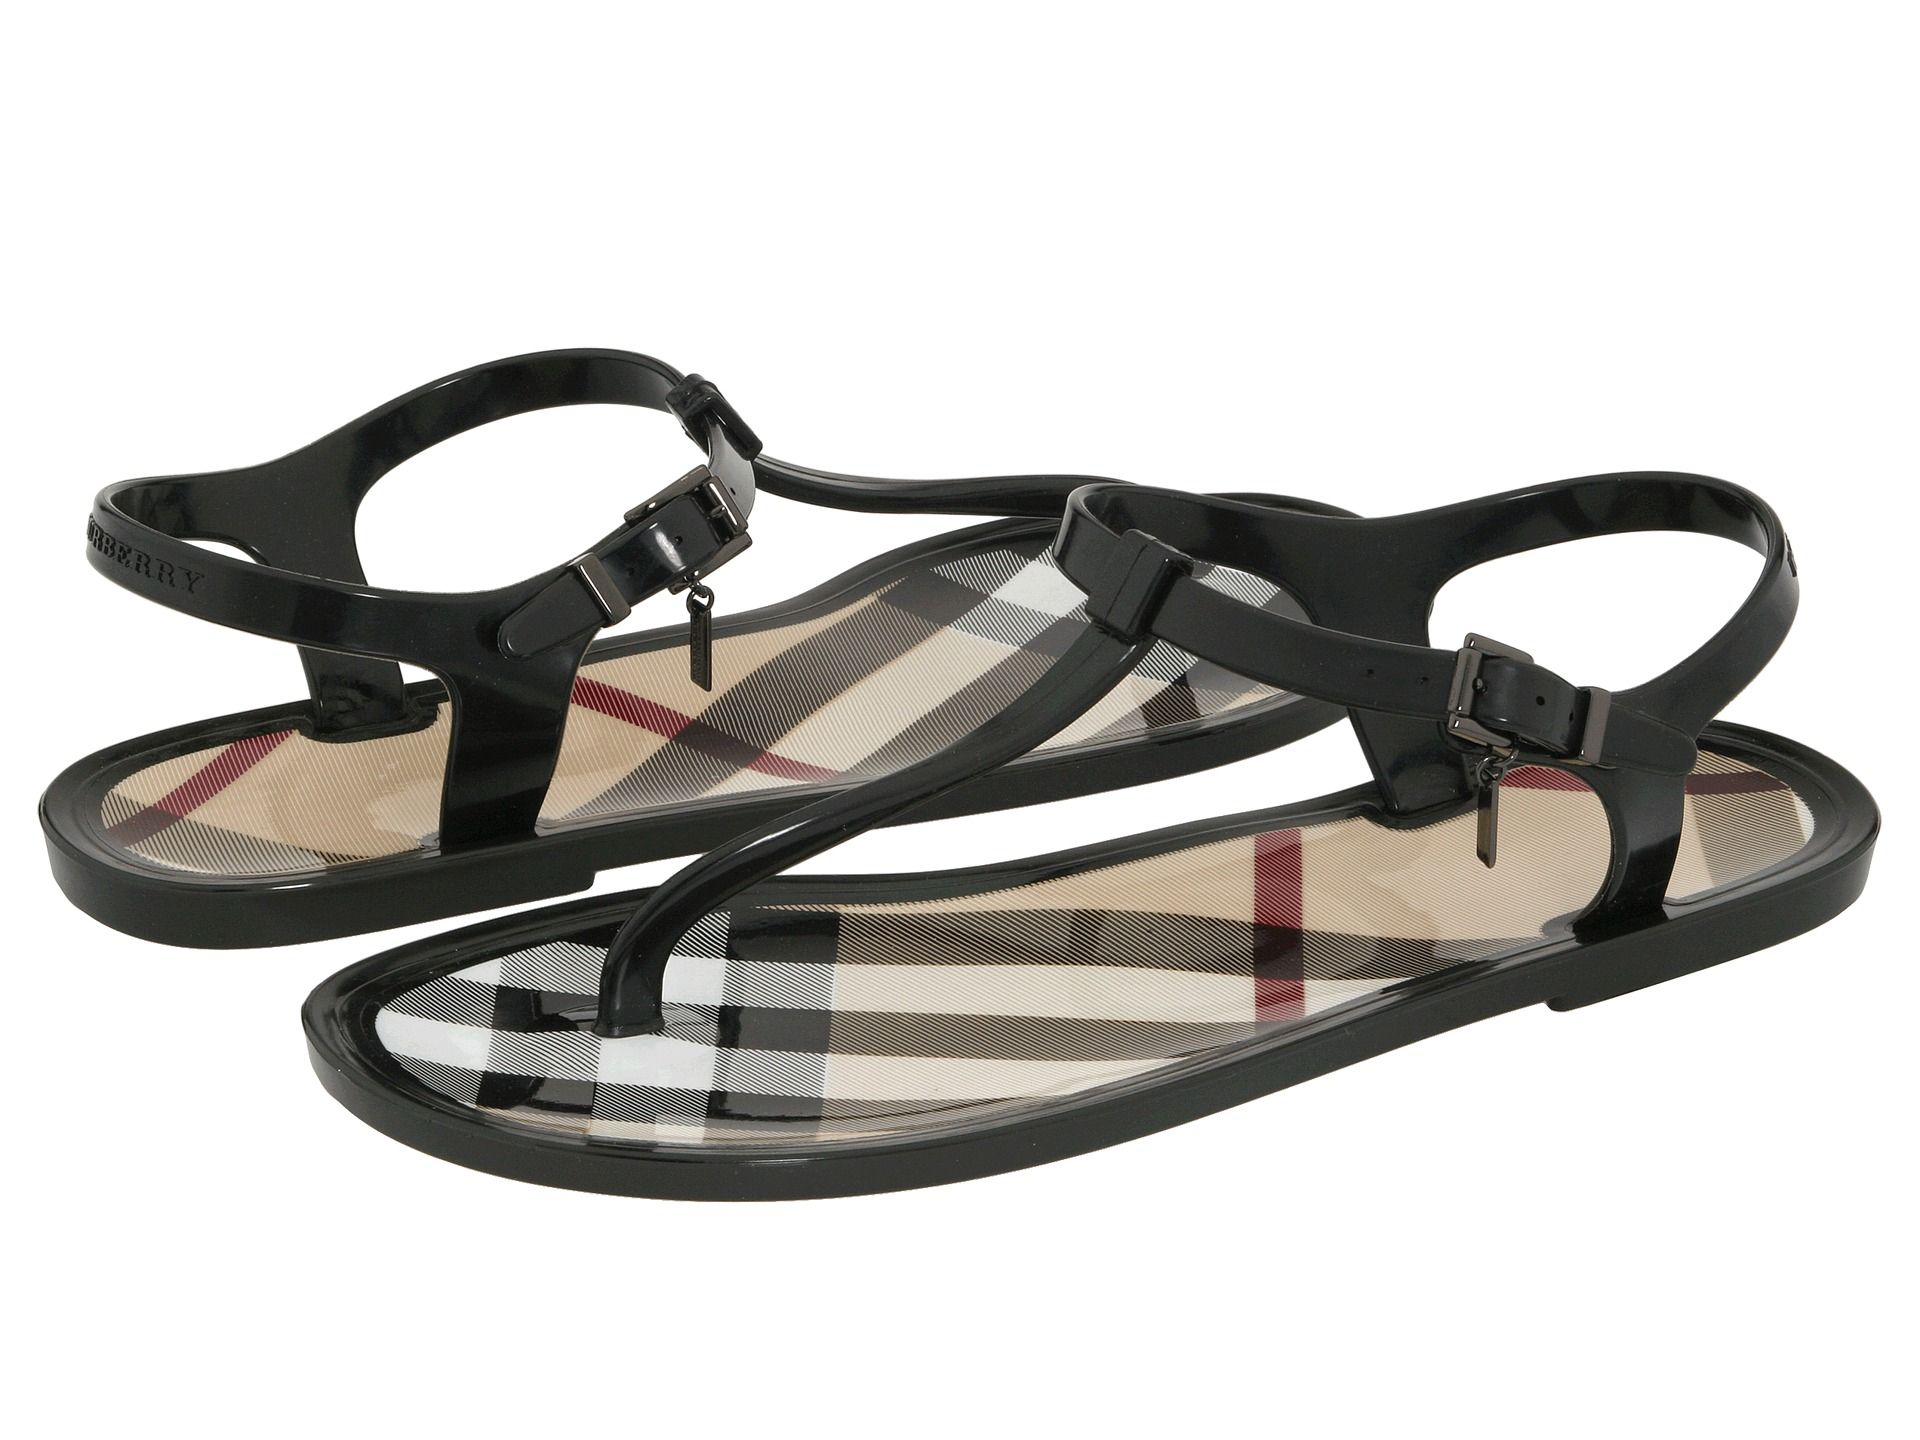 6685affe9725 Burberry Jelly. Burberry Jelly Jelly Sandals